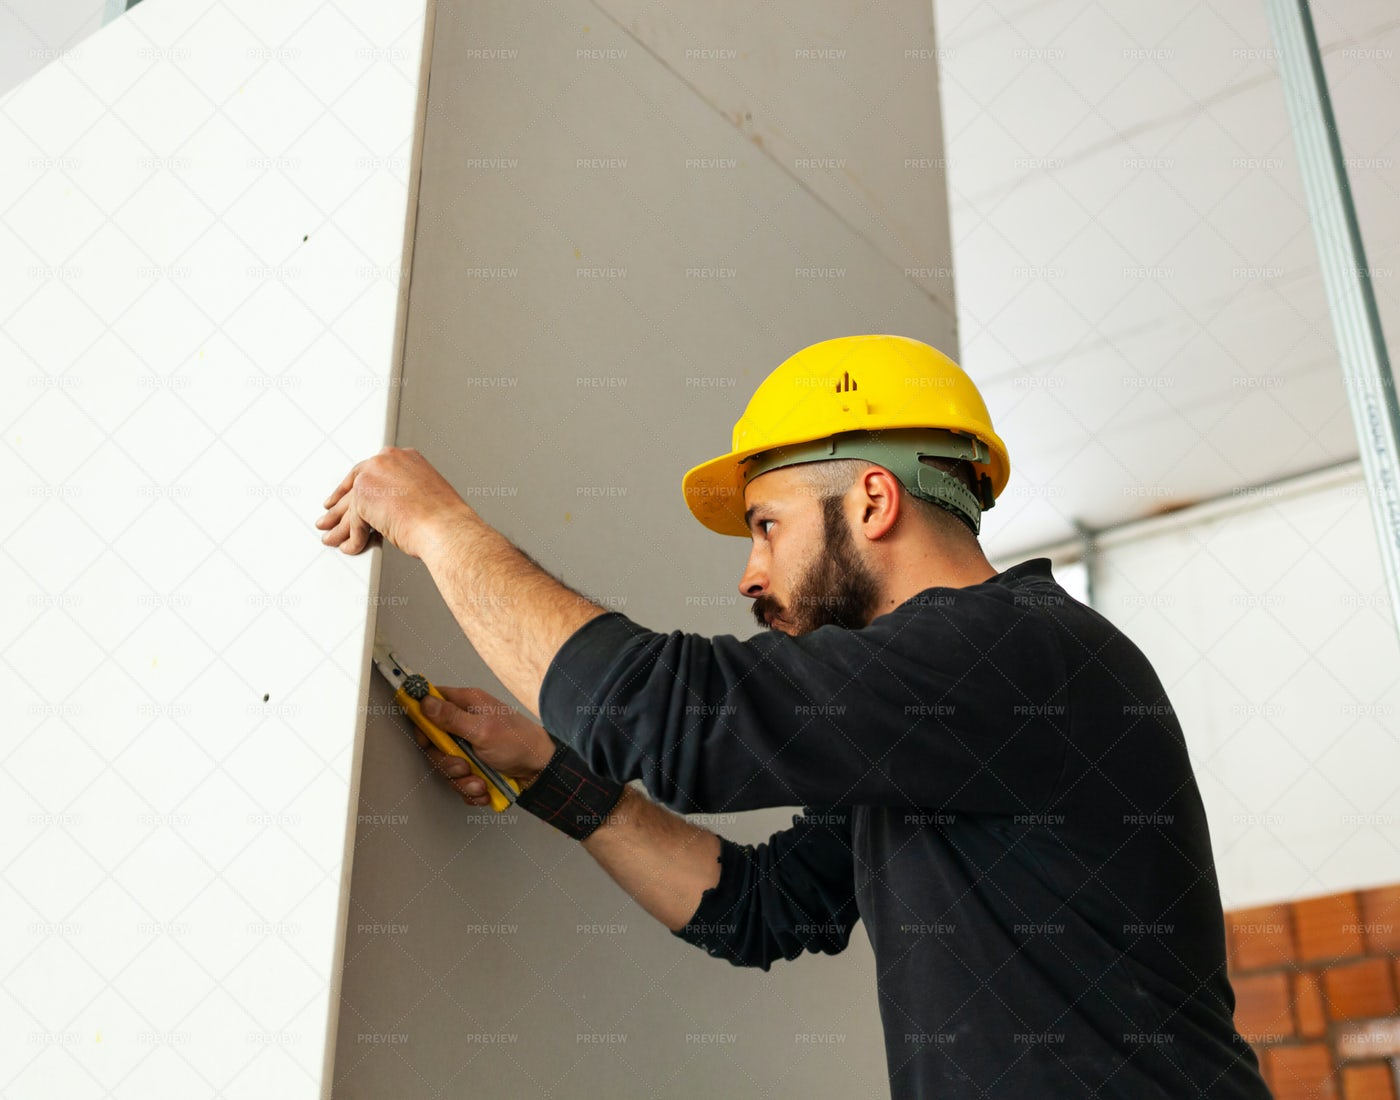 Plasterboard Wall Construction: Stock Photos